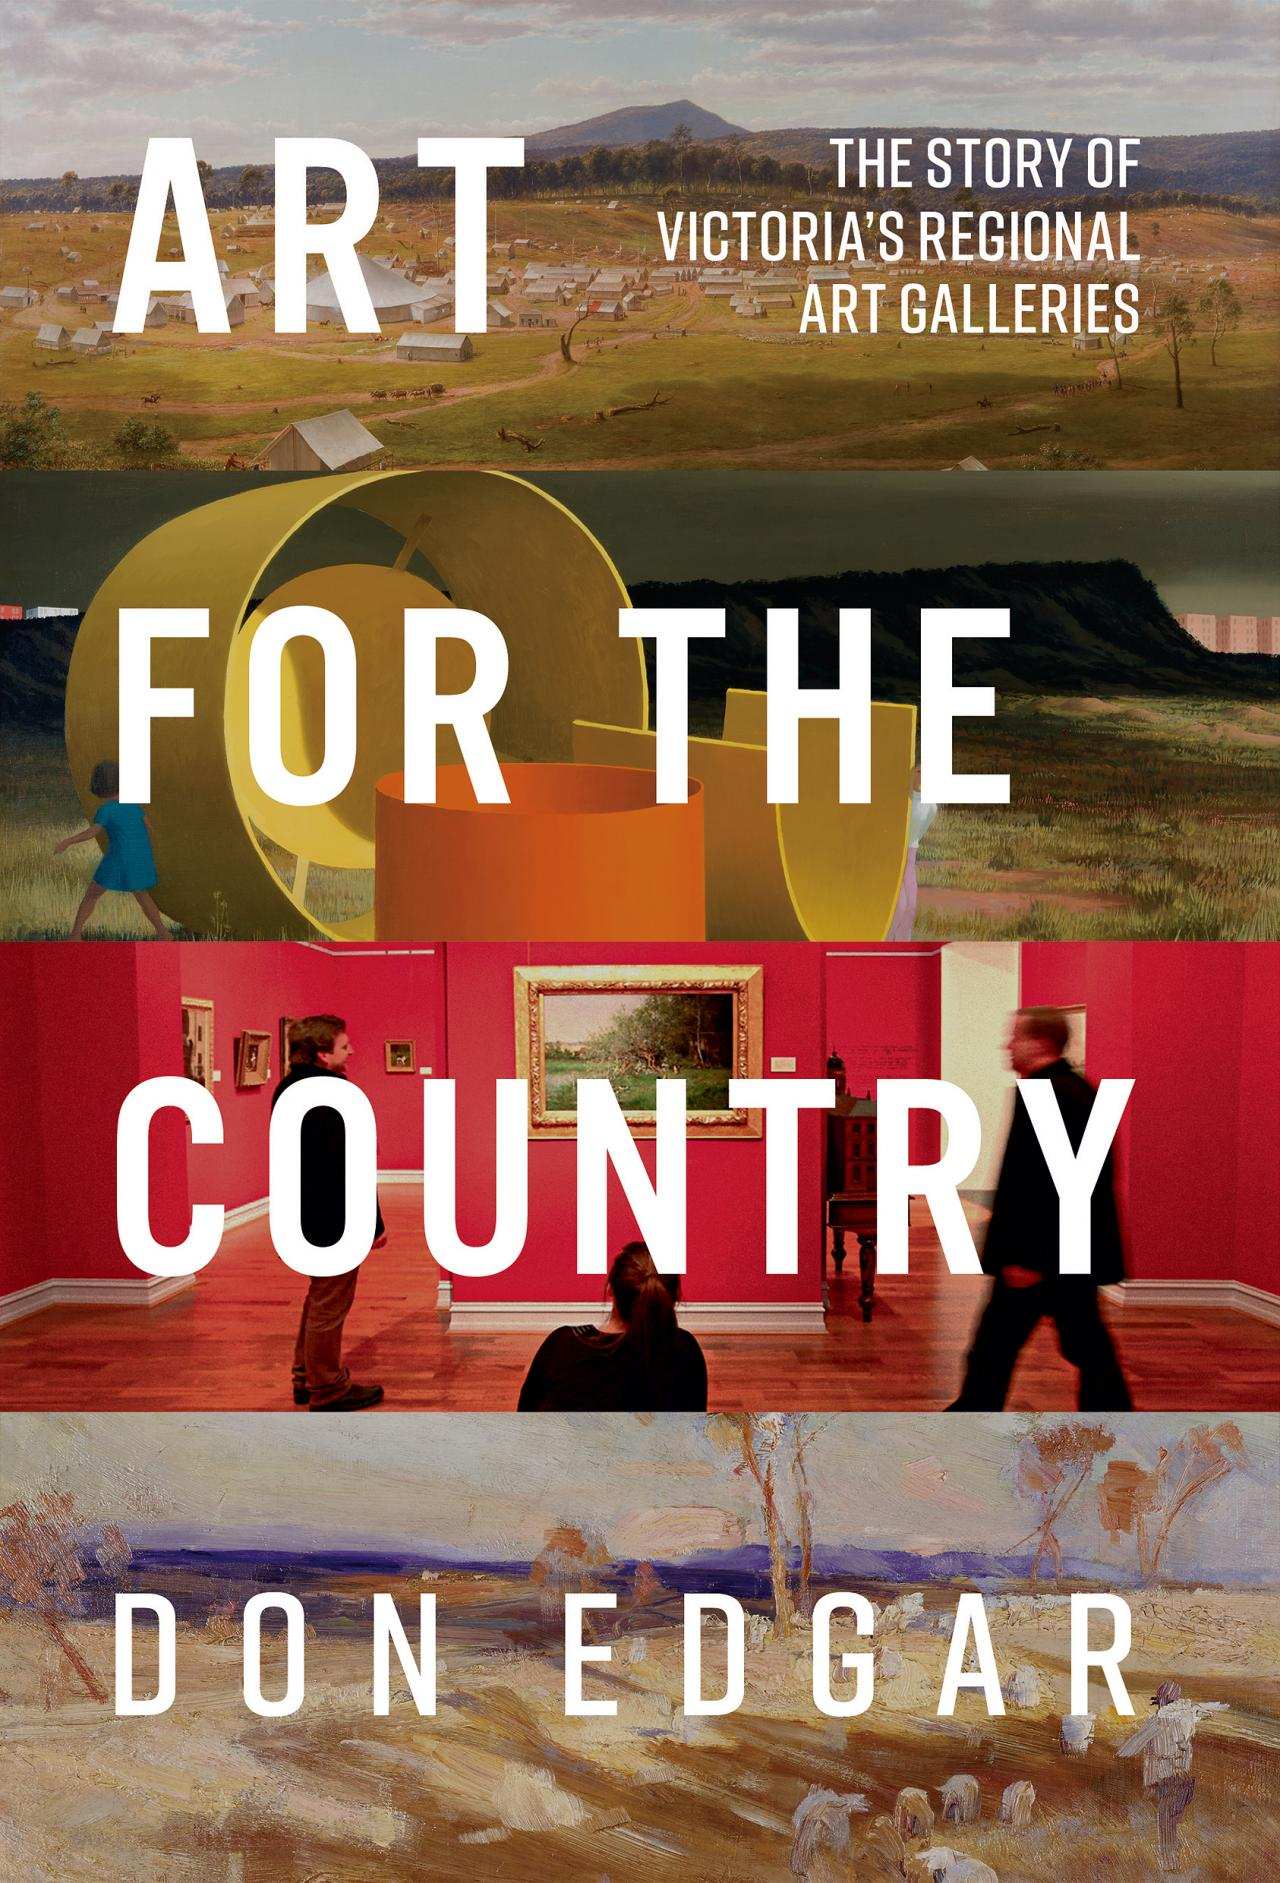 Cover of Art for the Country: The Story of Victoria's Regional Art Galleries (2019) by Don Edgar Published by Australian Scholarly Publishing